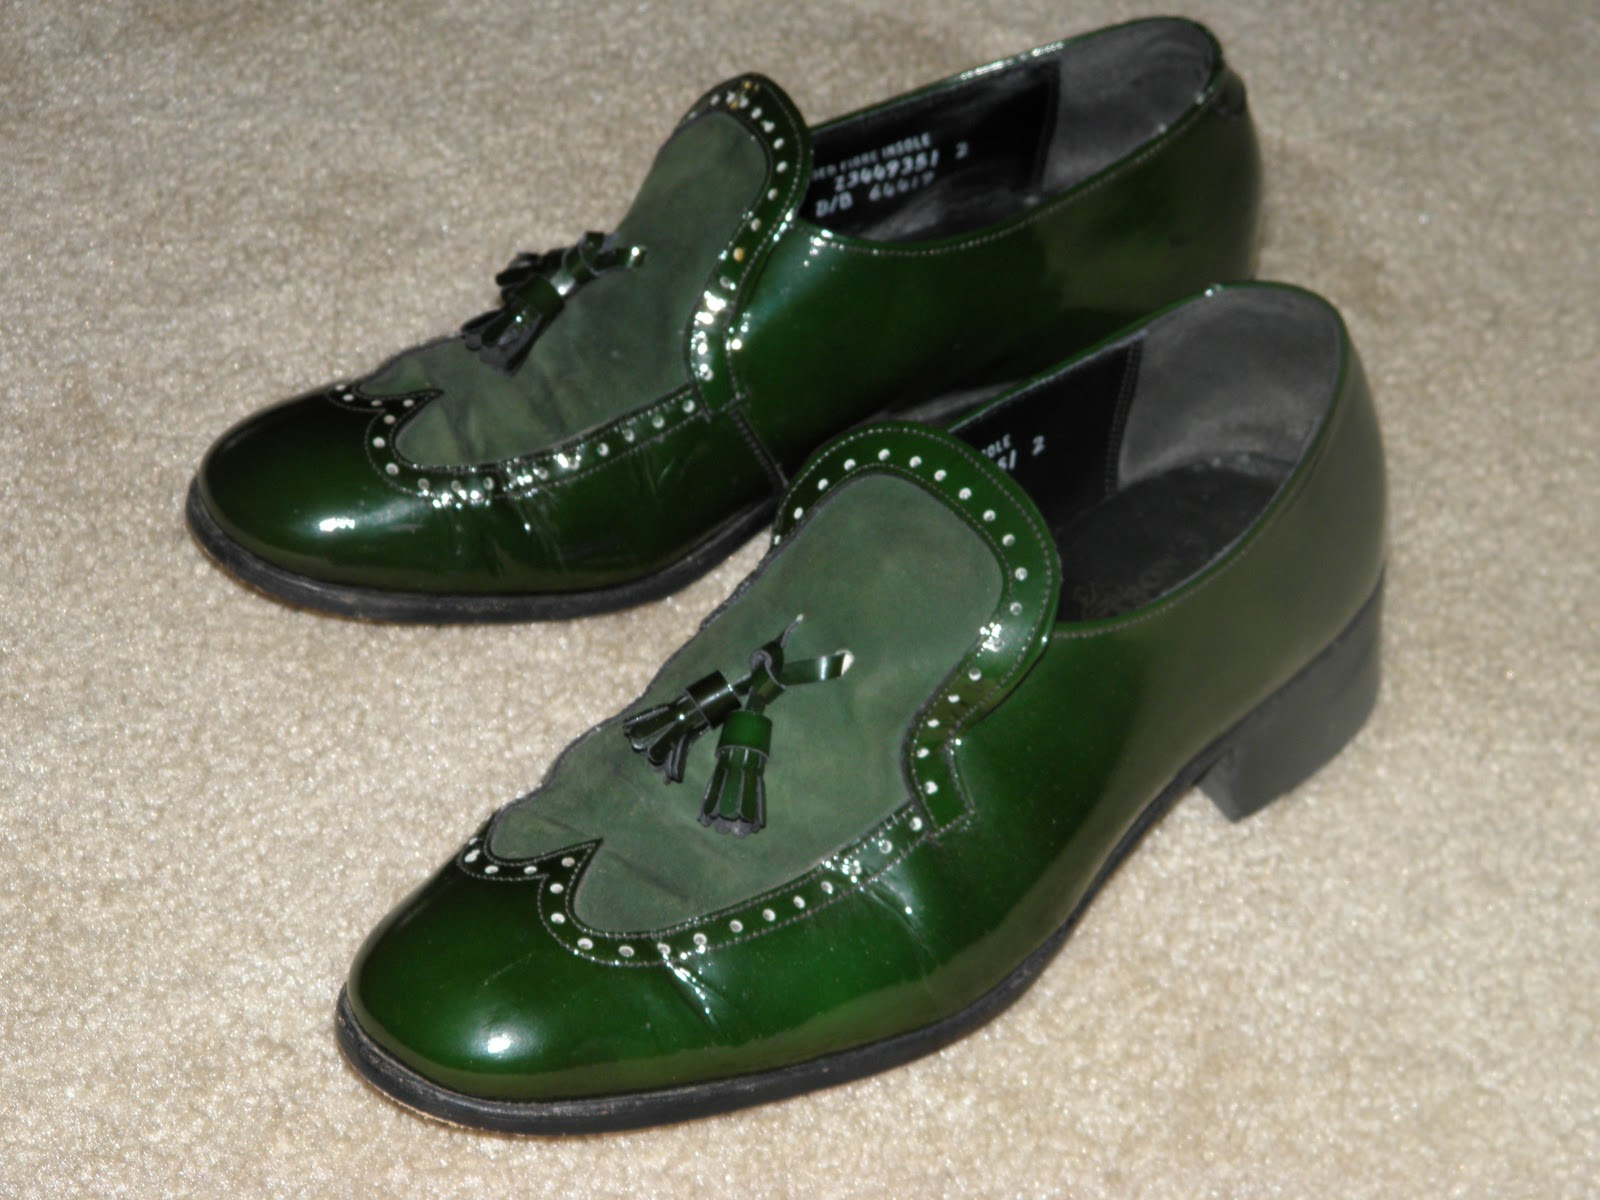 From Yard Sale to Ebay  Money in the pocket  Stetson Loafers - Irish ... 0142e7040d3